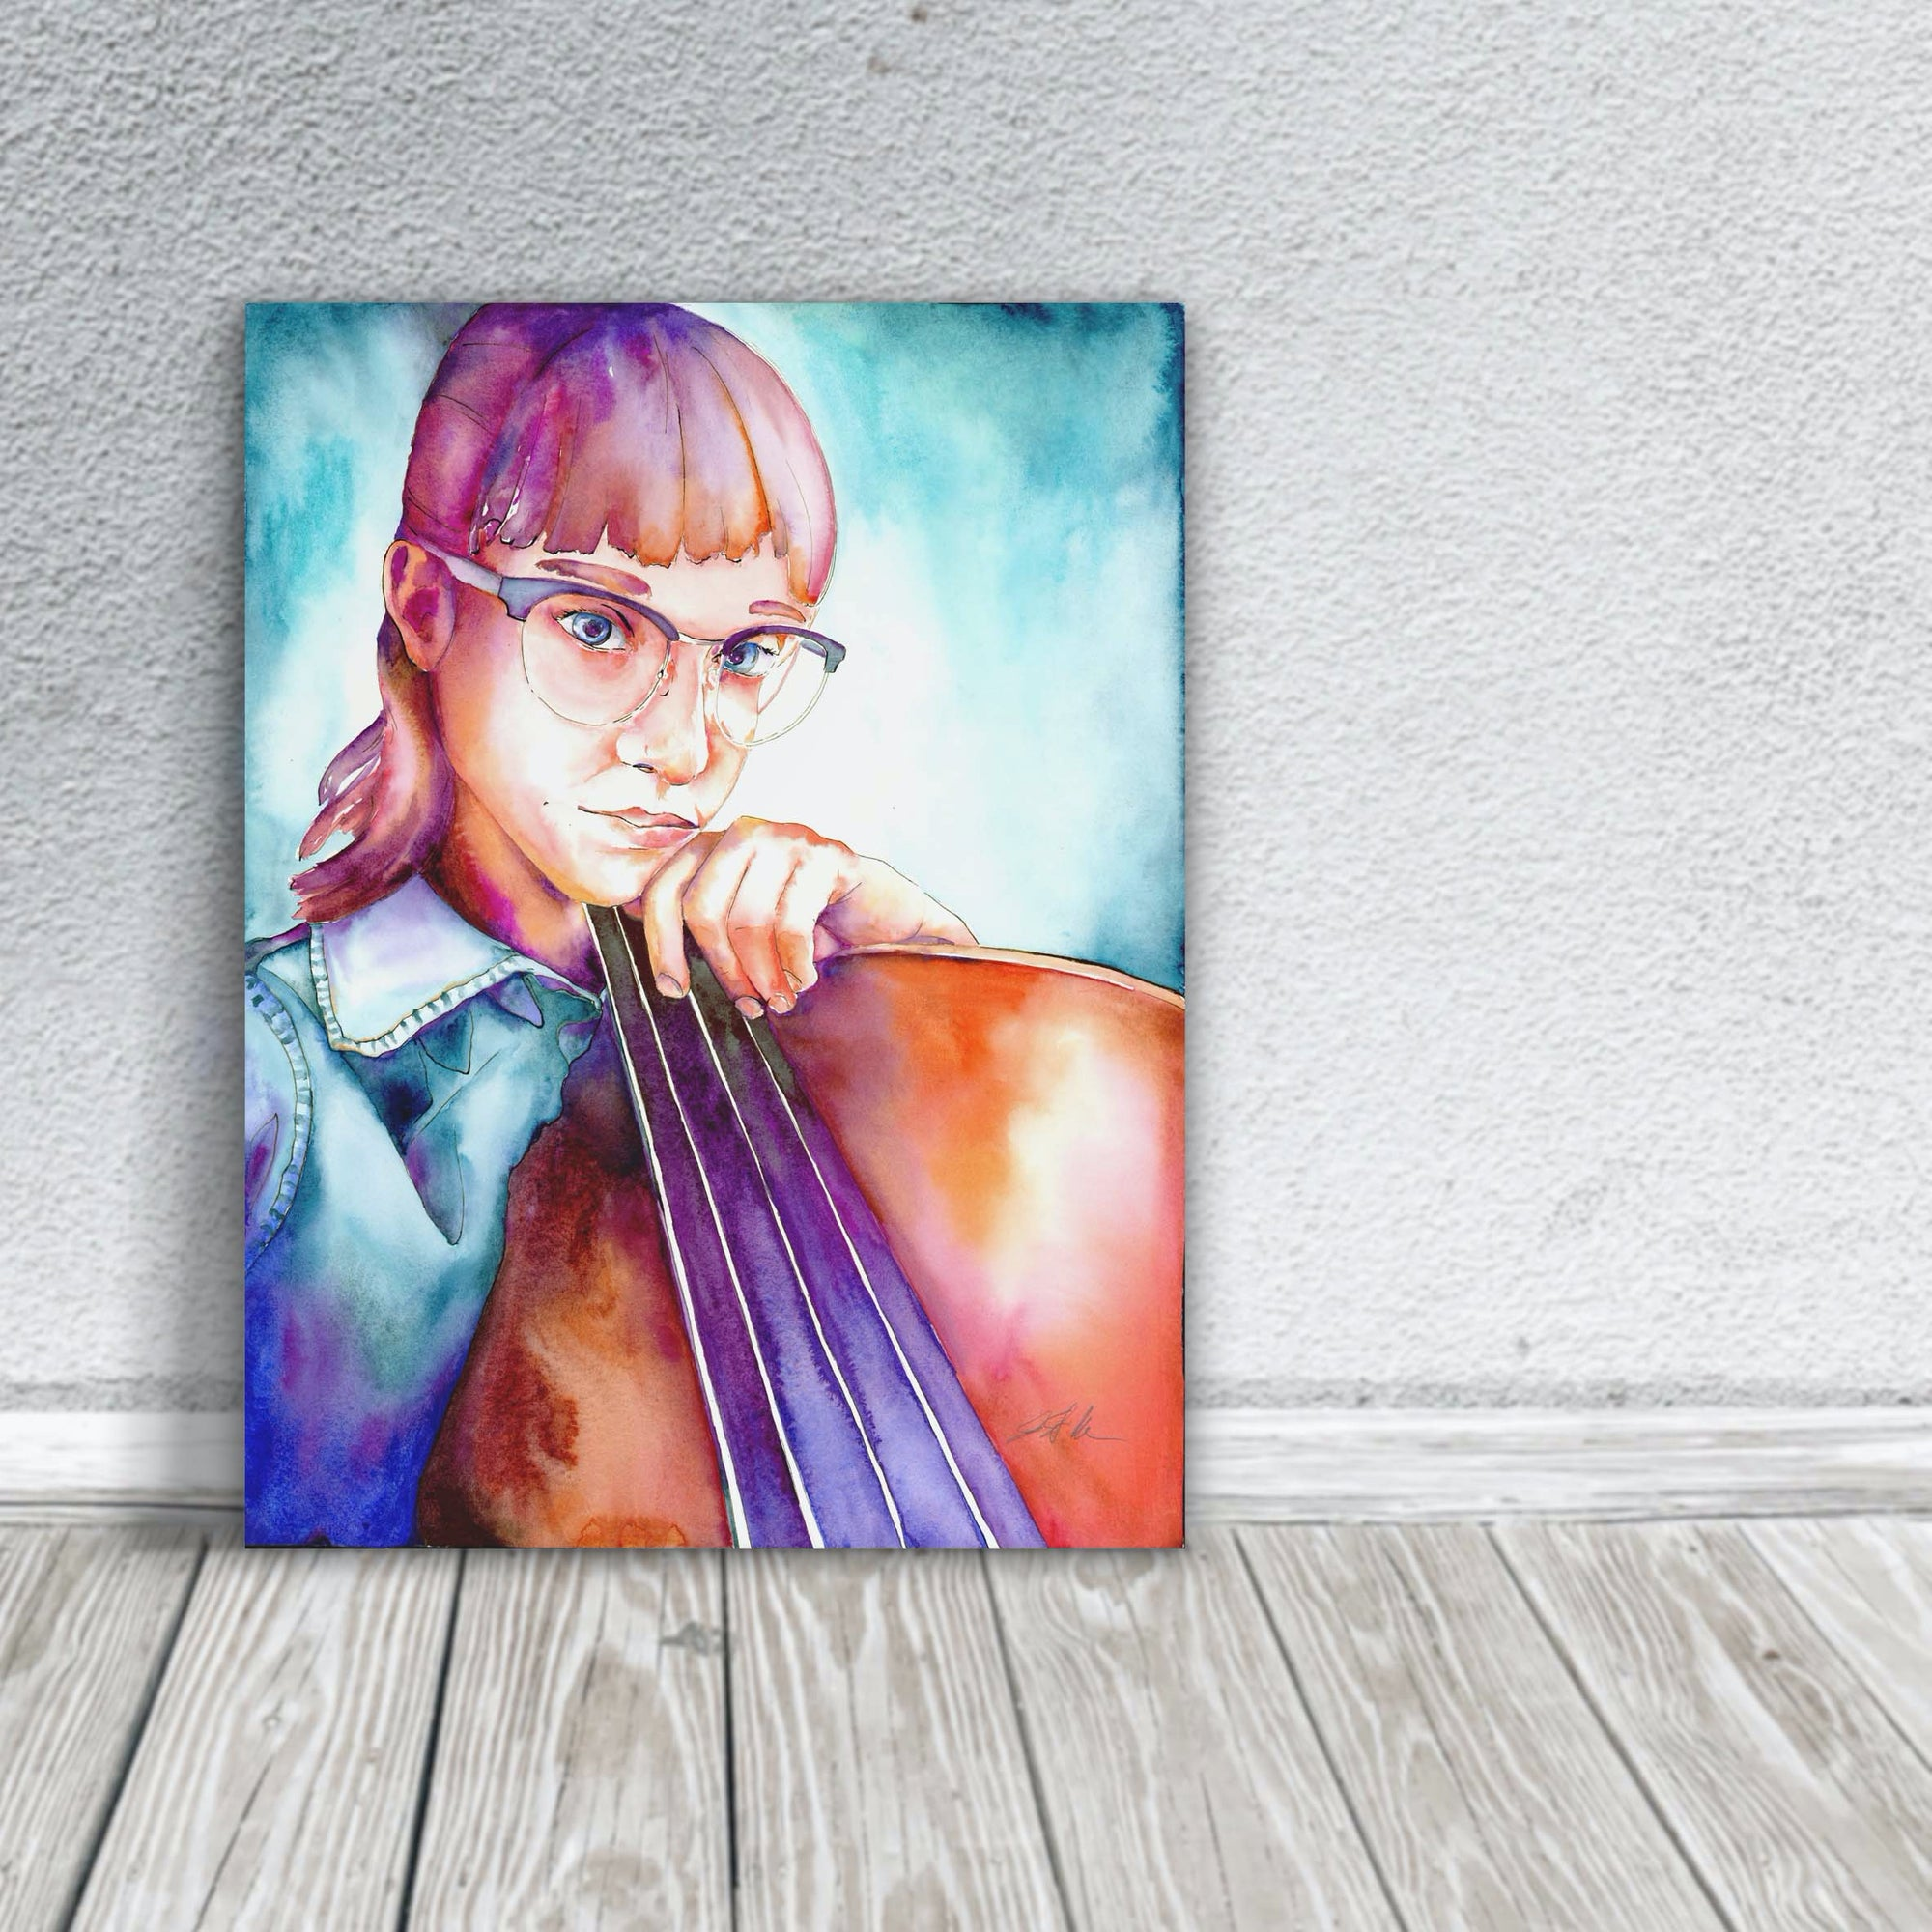 portrait of bass player